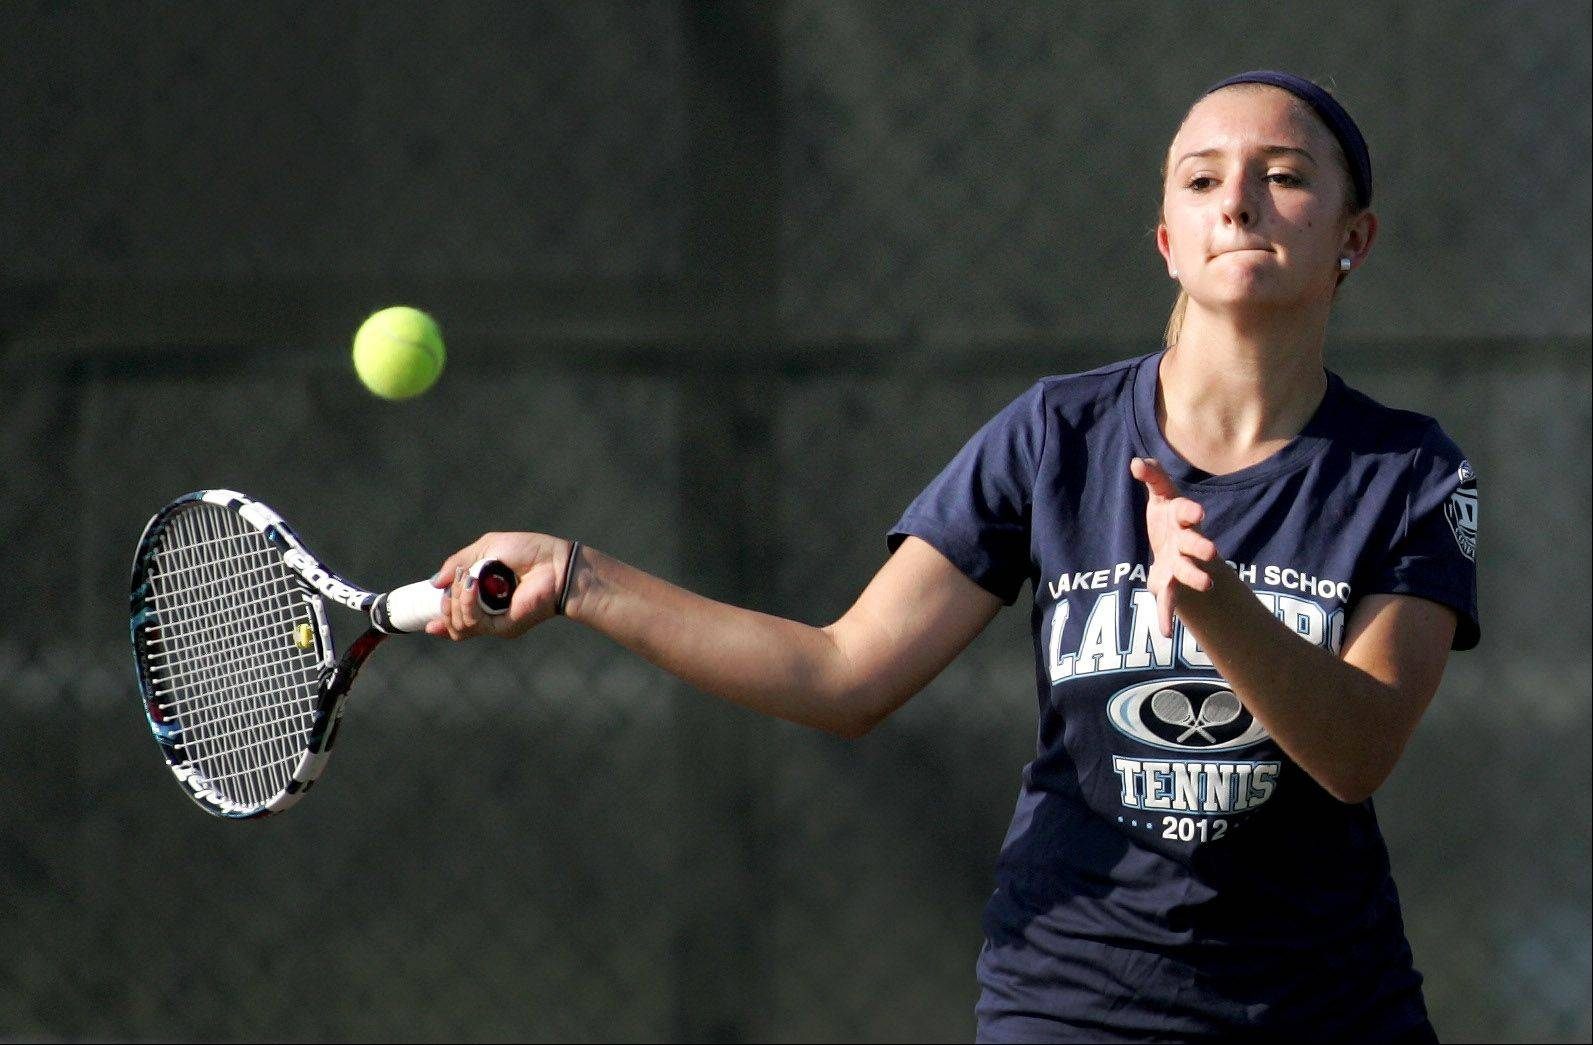 Lake Park's Claudia Kazmirak returns a shot in her singles match against Glenbard South in Monday's tennis meet in Glen Ellyn.